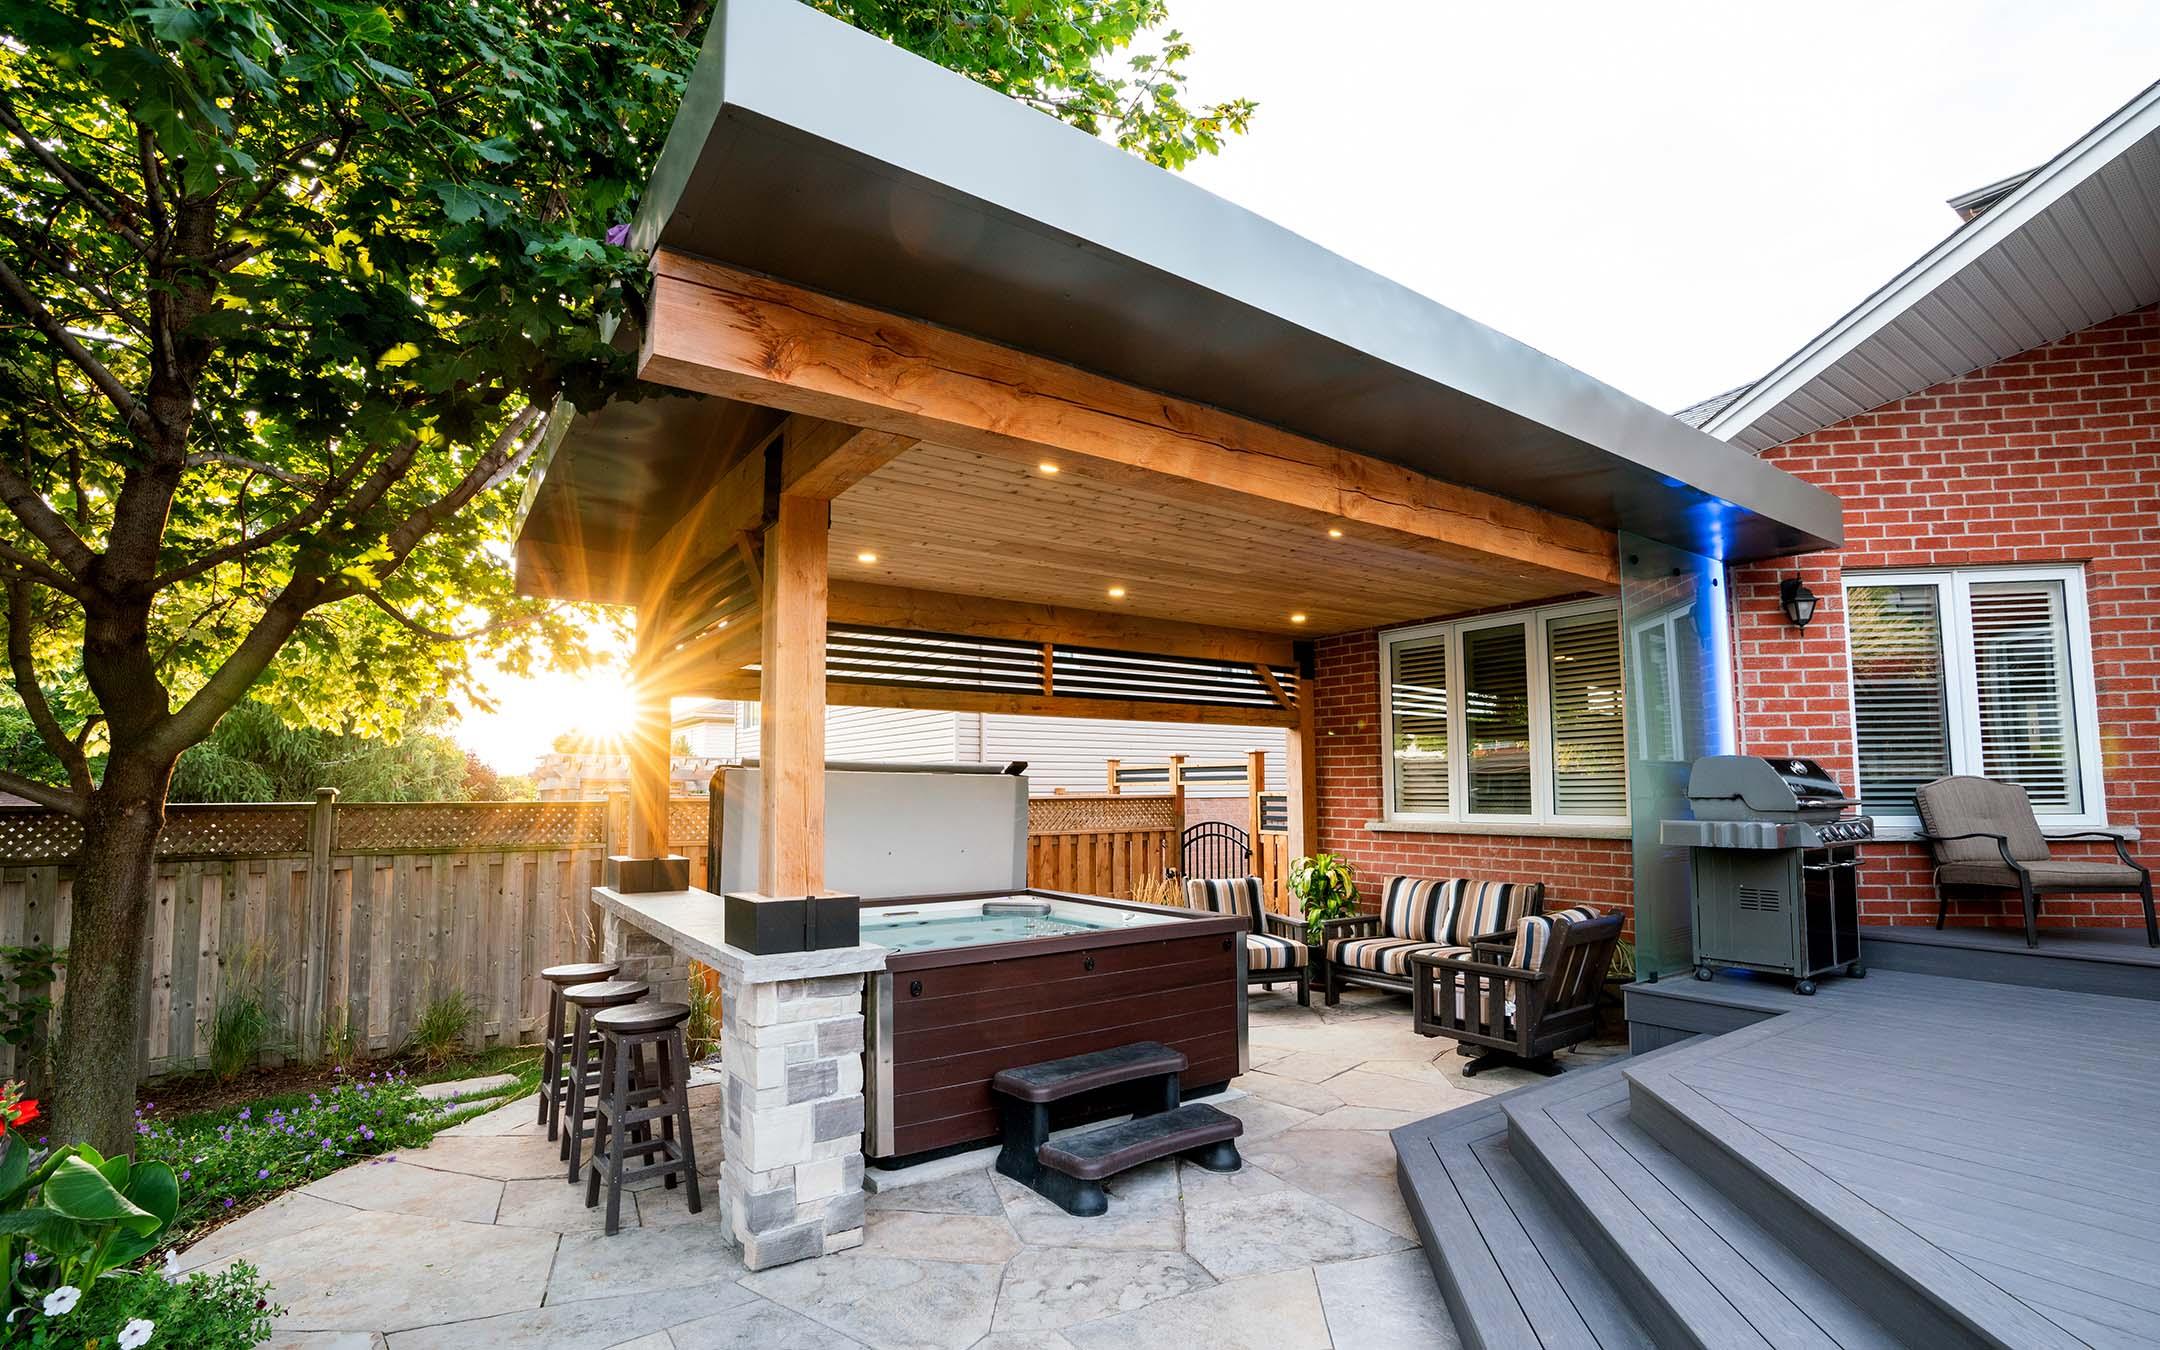 An outdoor living area with a hot tub and a bar table.